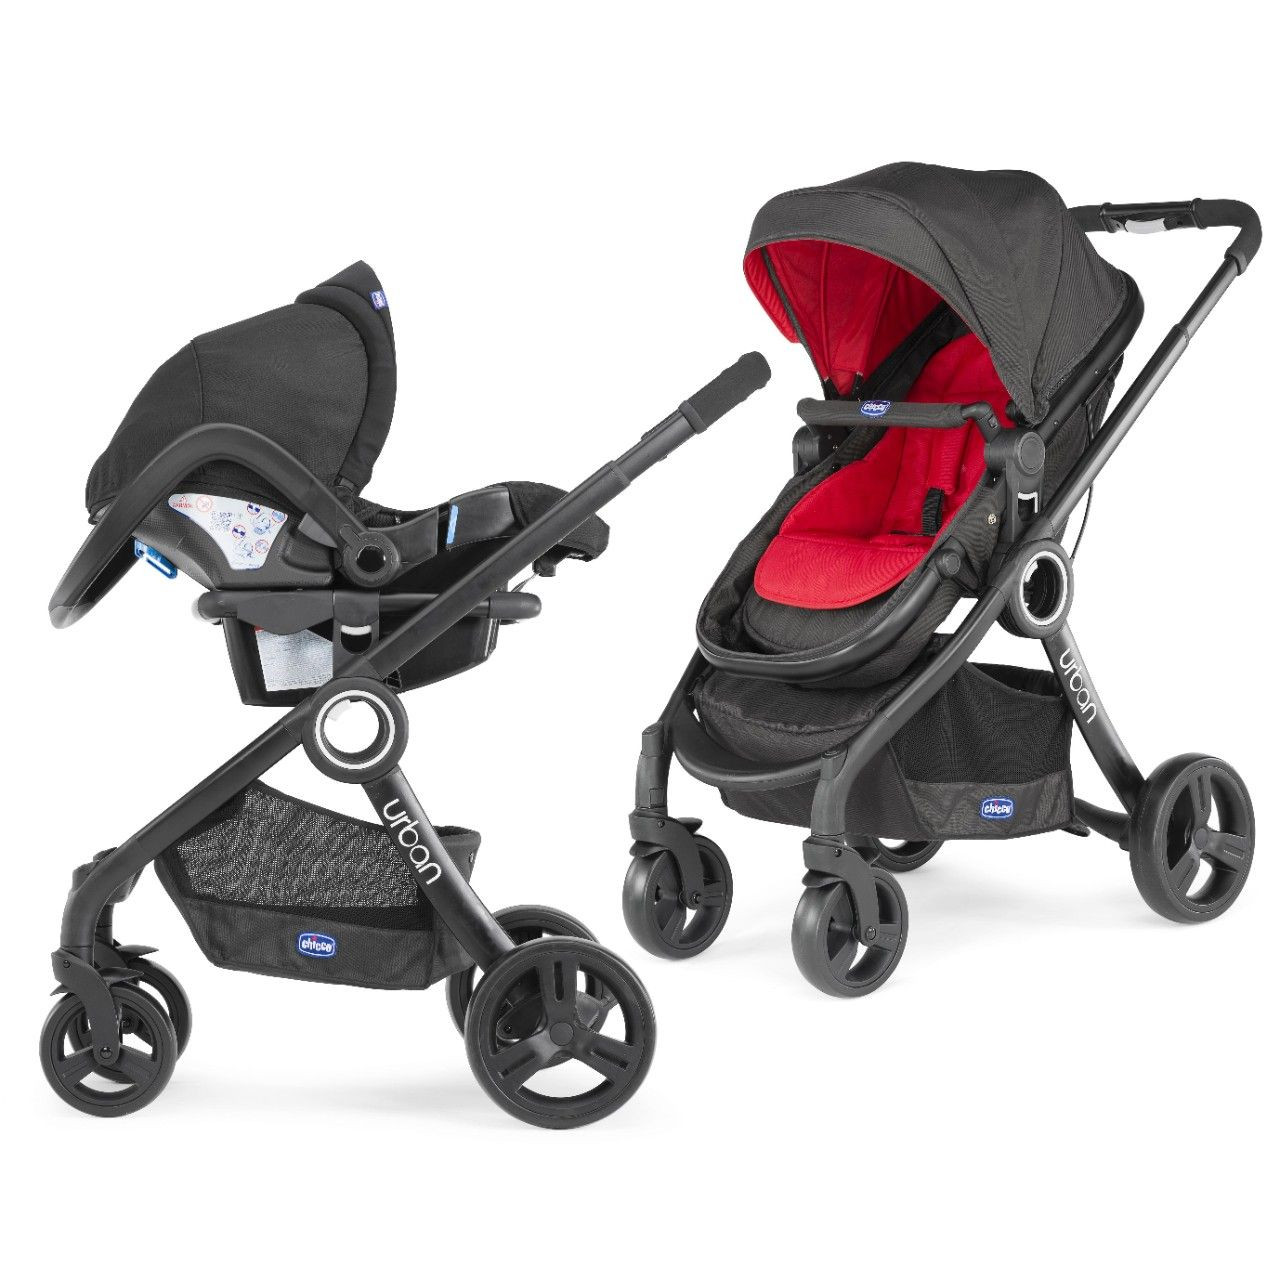 The all inclusive 3 in 1 pack Stroller, Stroller sale